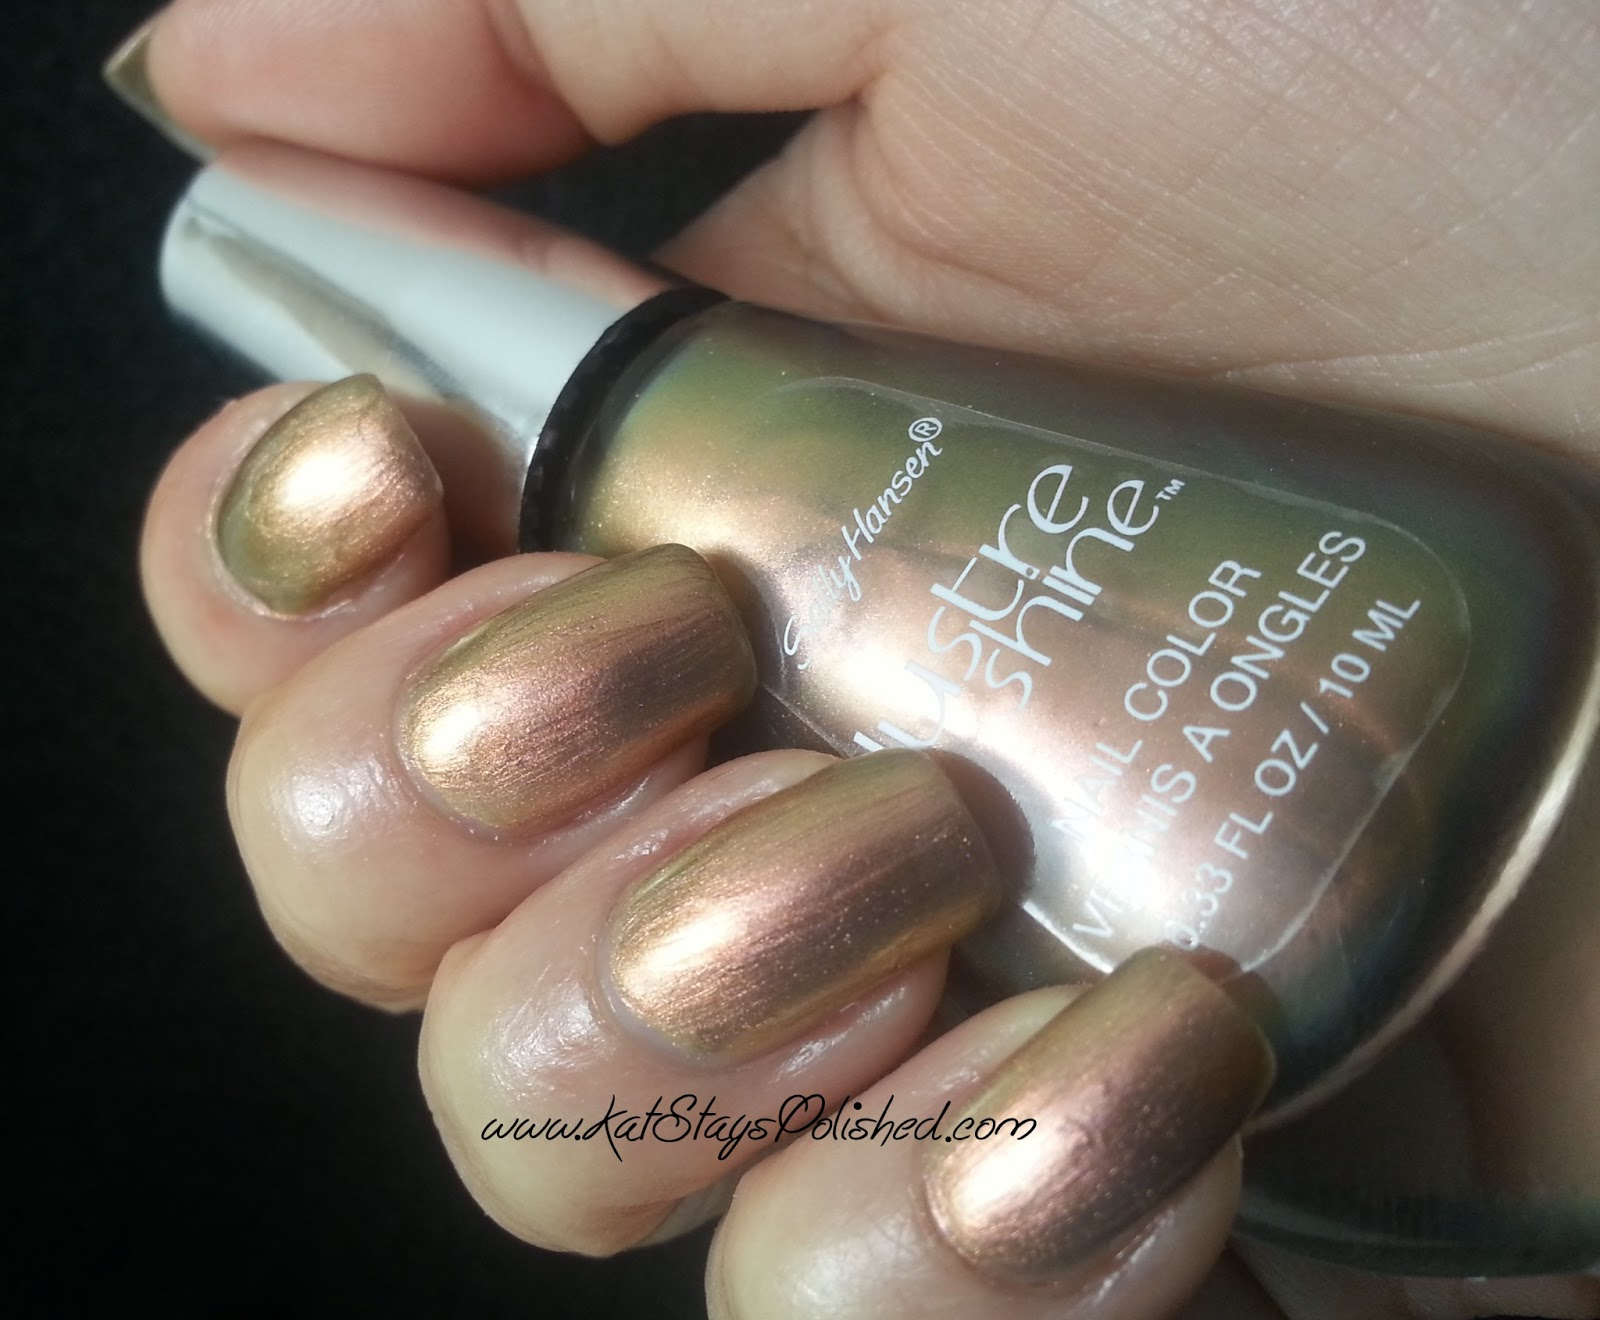 Kat Stays Polished | Beauty Blog with a Dash of Life: Sally Hansen ...